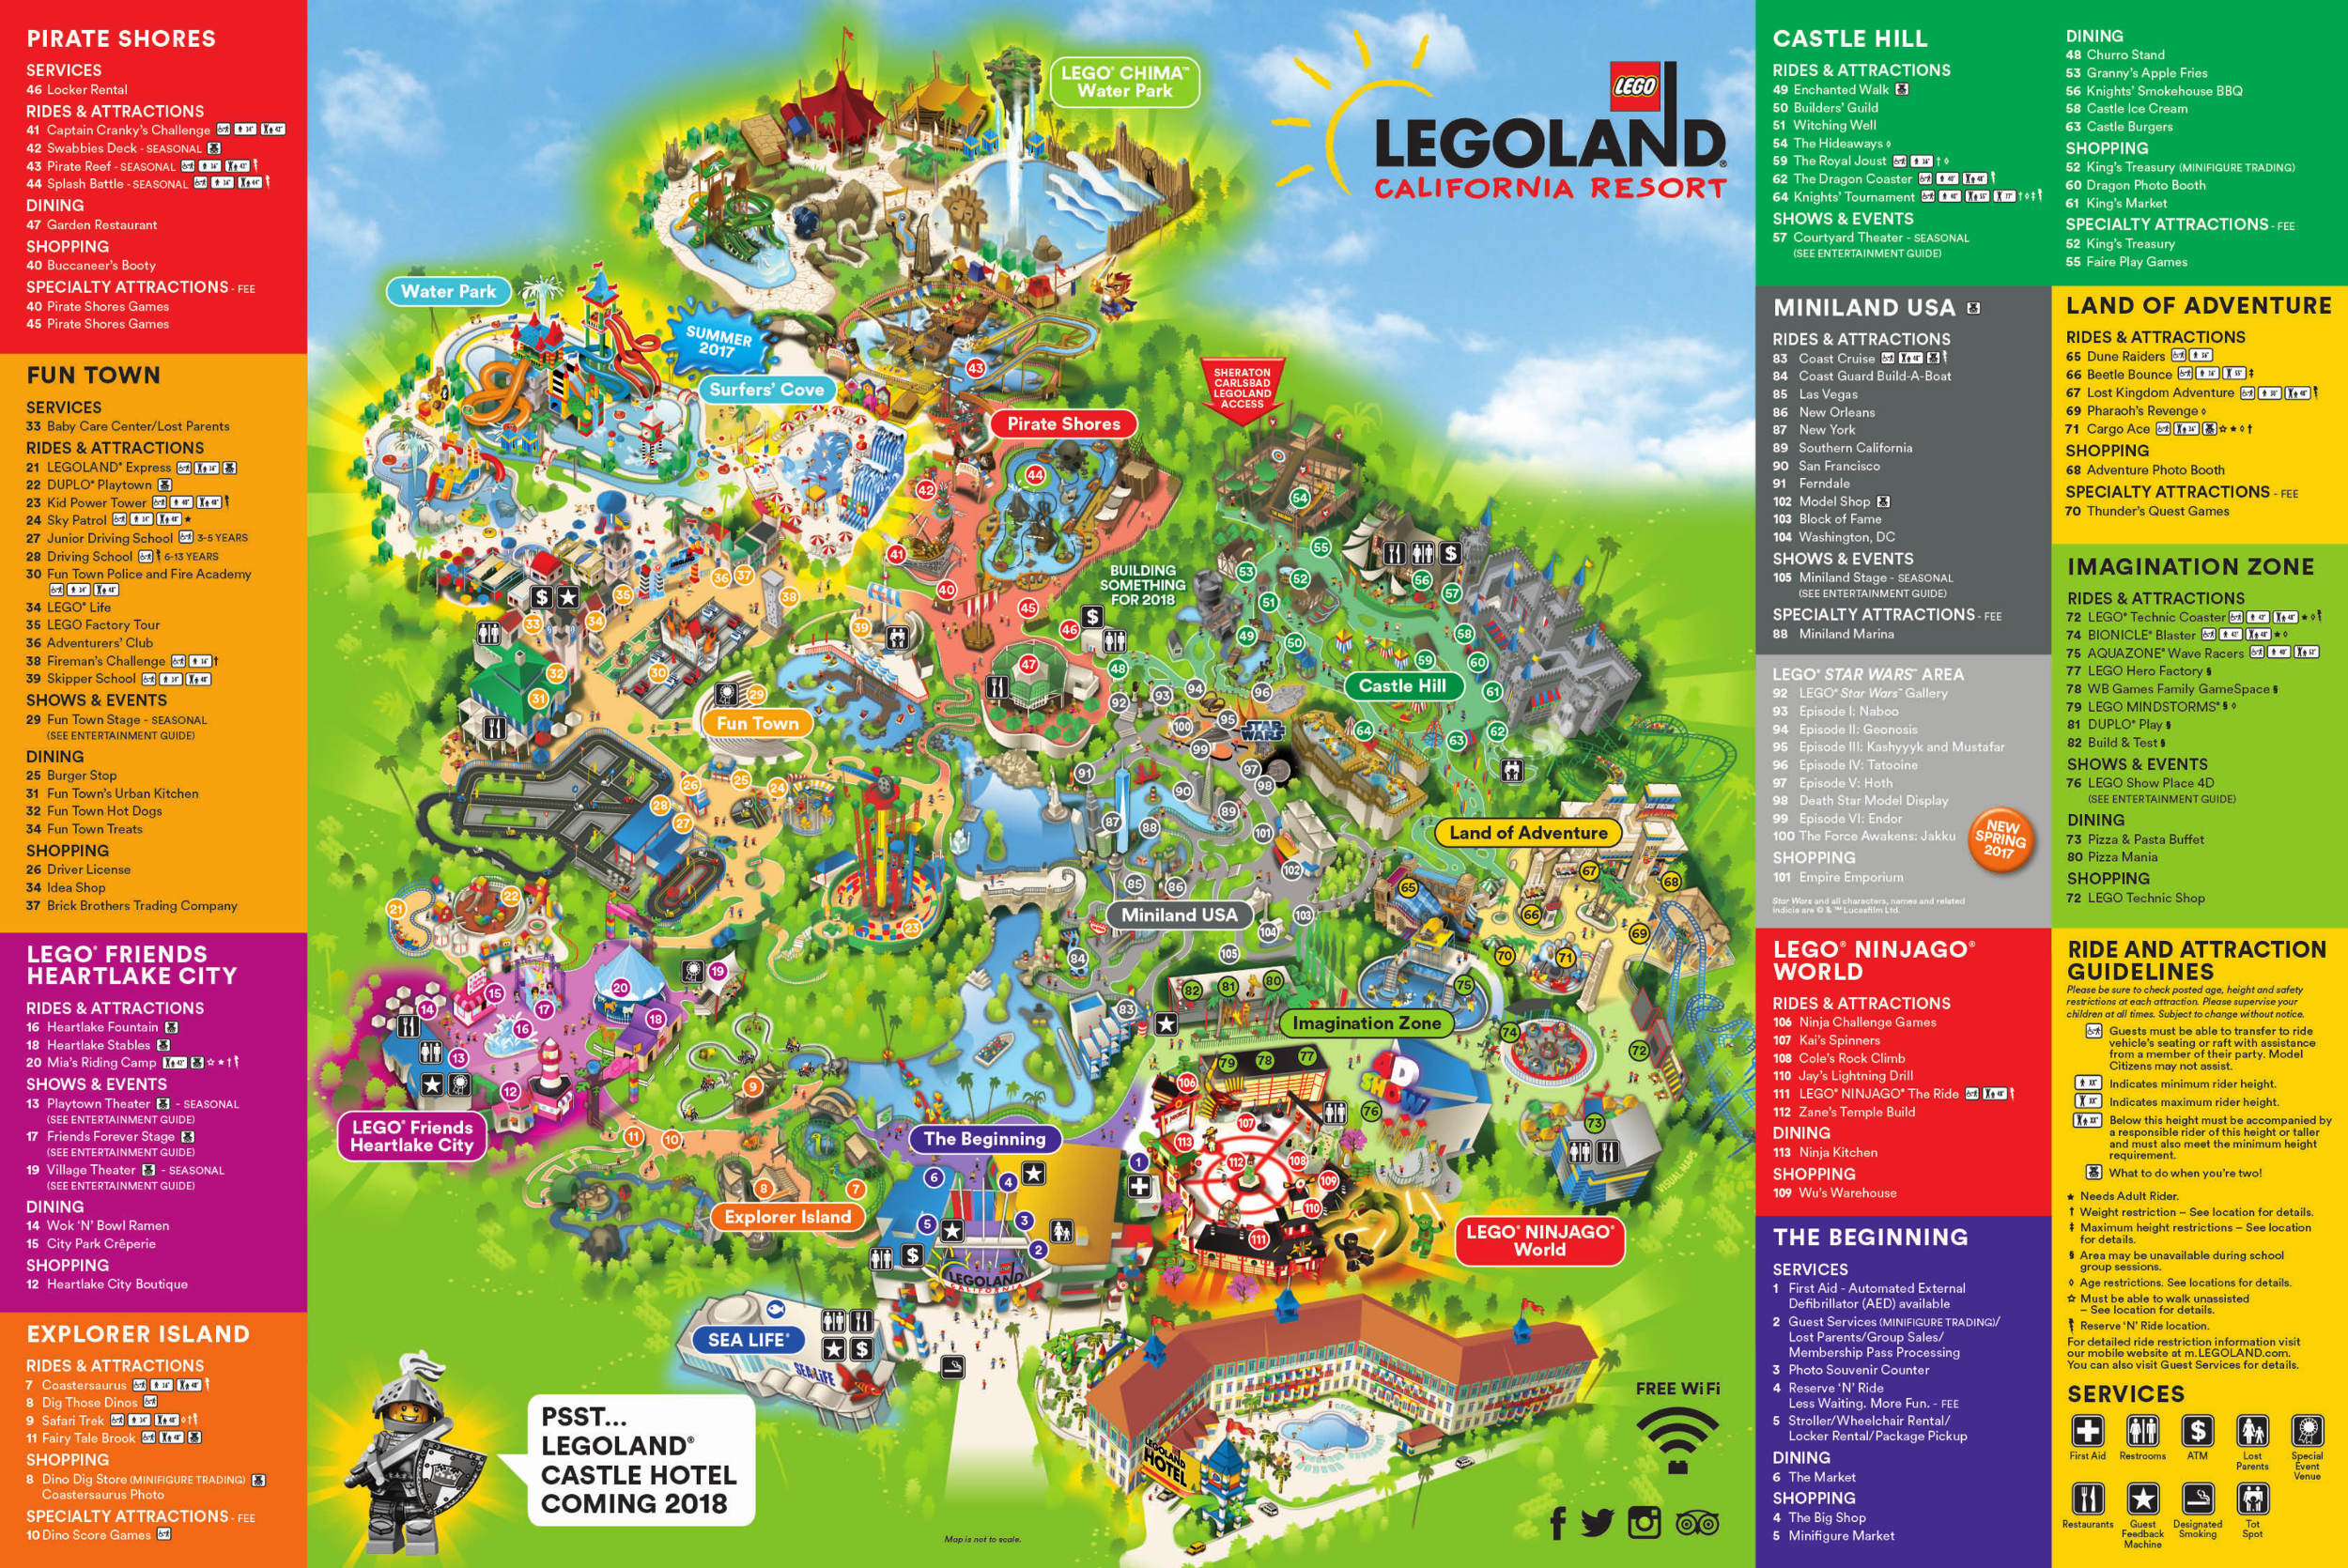 Legoland California Resort Theme Park Map Google Maps California Map - Legoland Florida Park Map